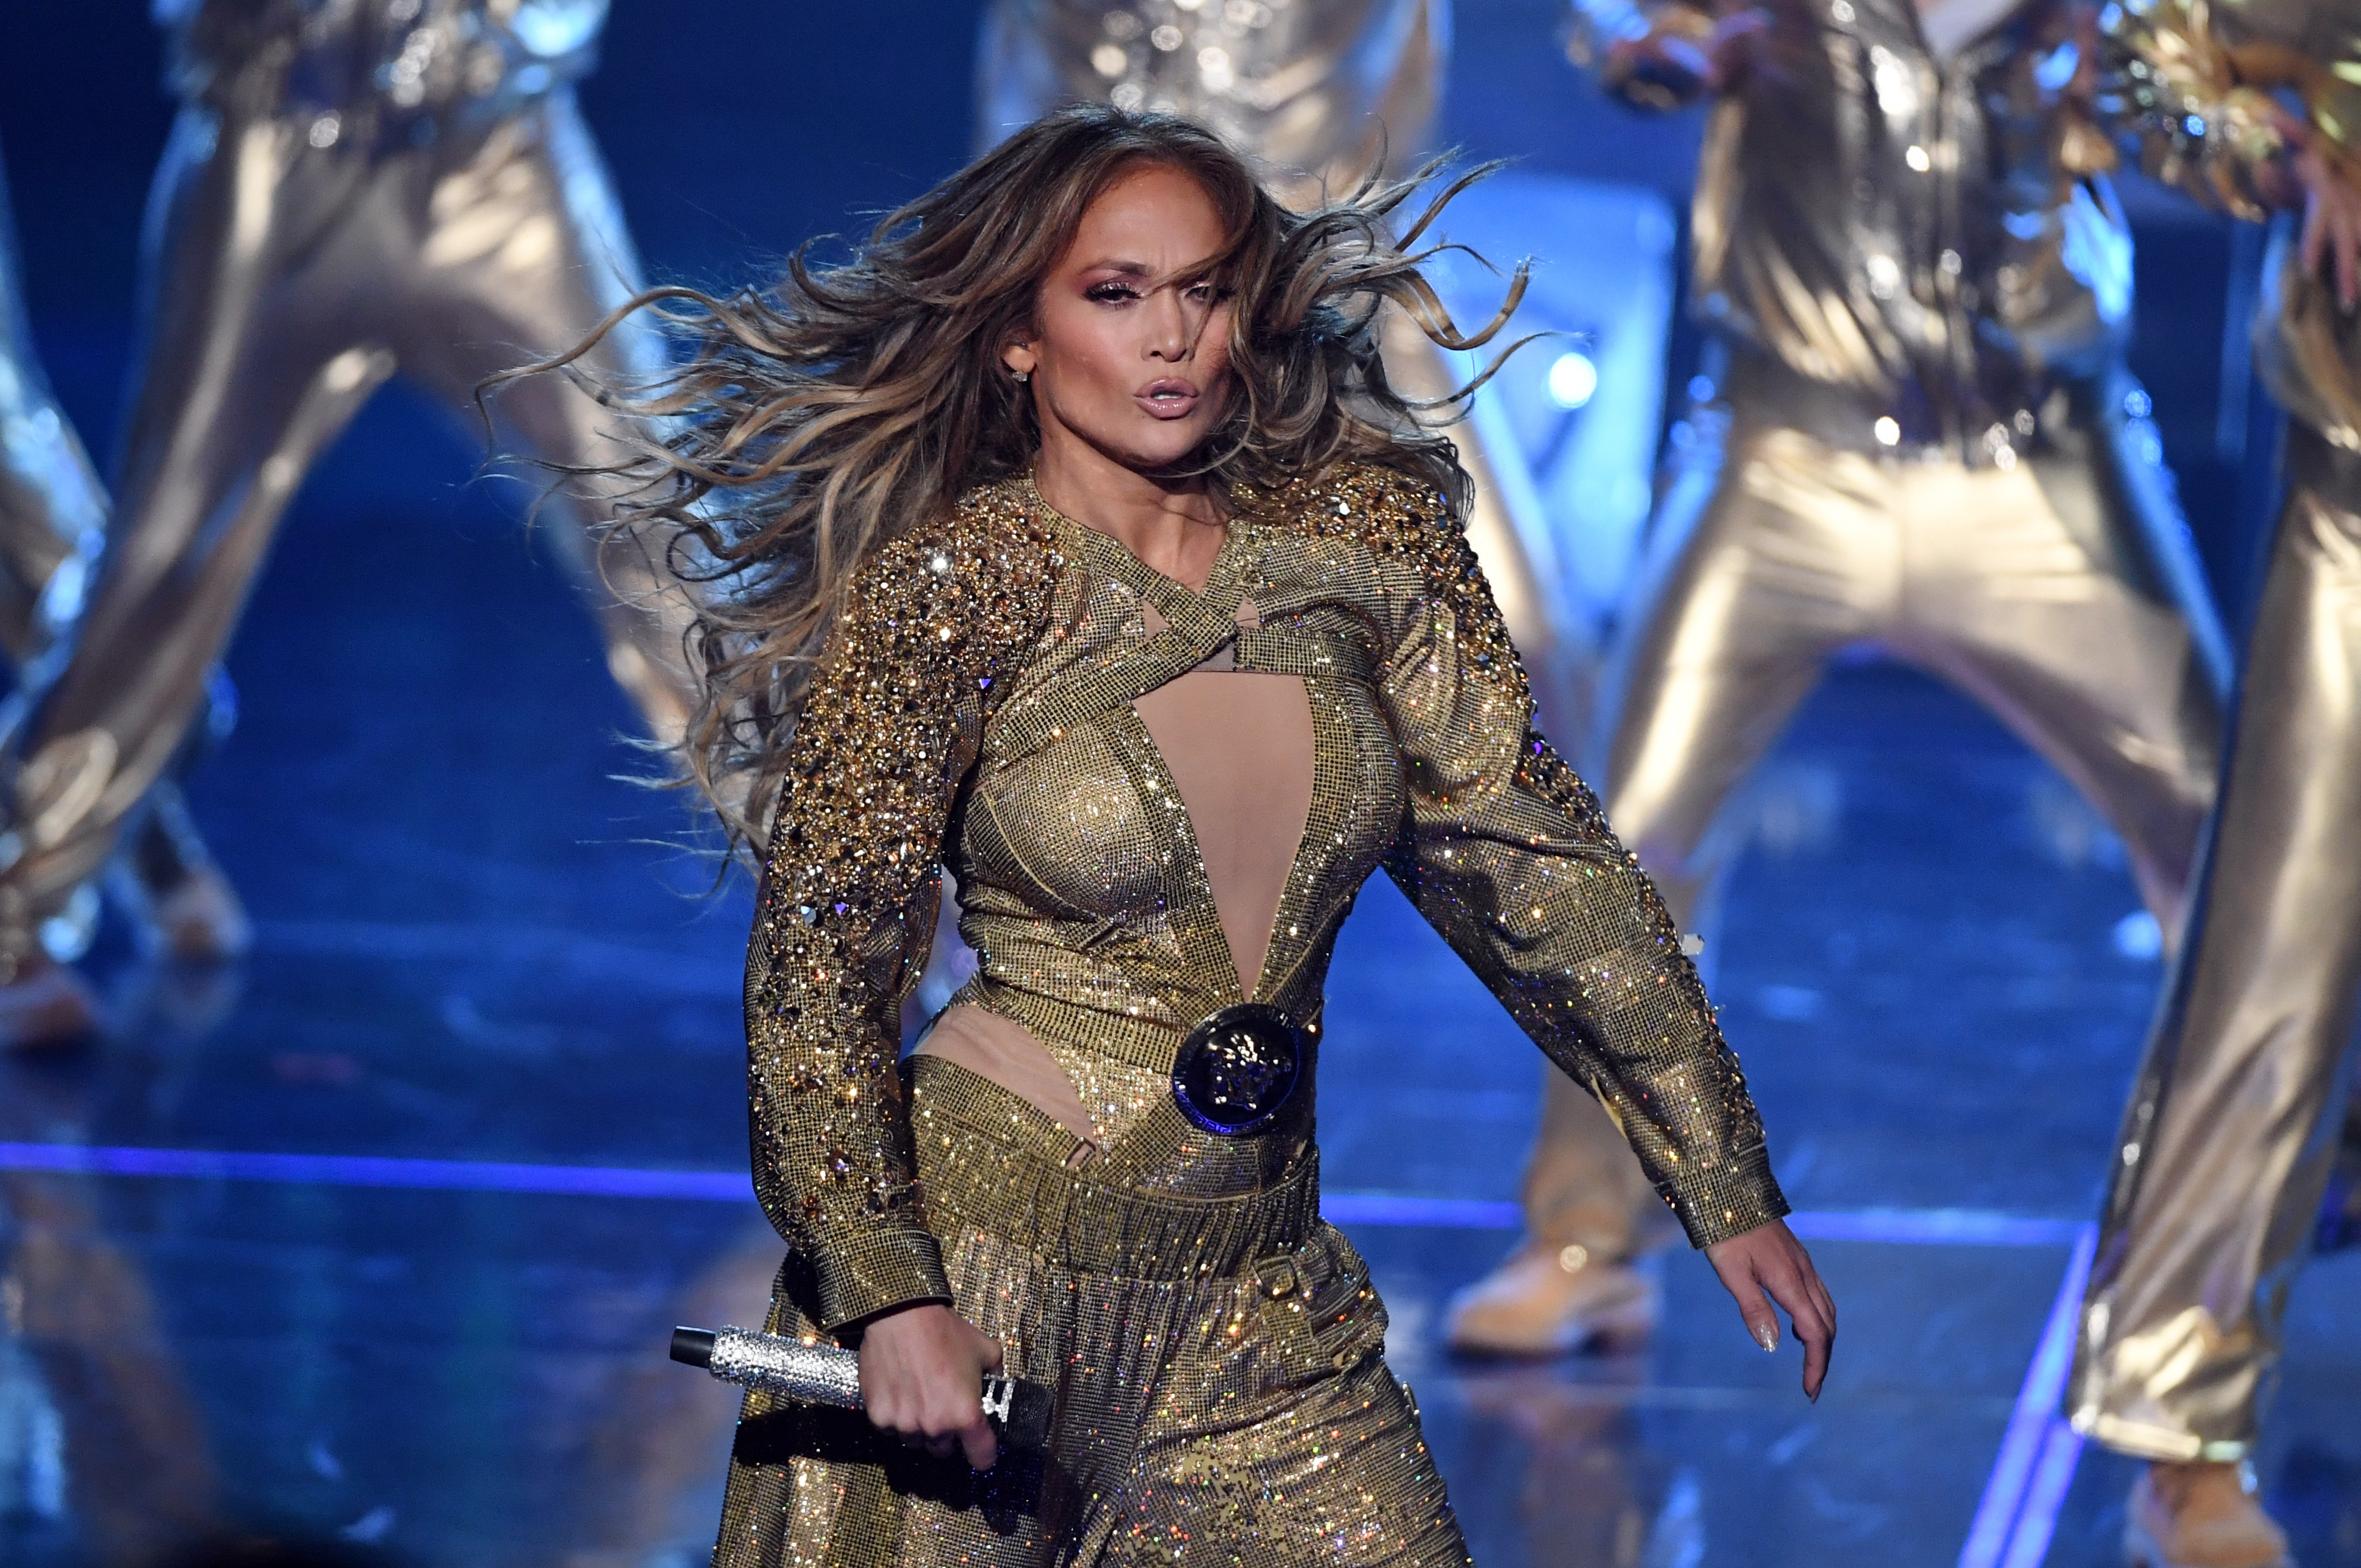 """JENNIFER LOPEZ: All I HAVE"" Finale At Zappos Theater At Planet Hollywood Resort & Casino"